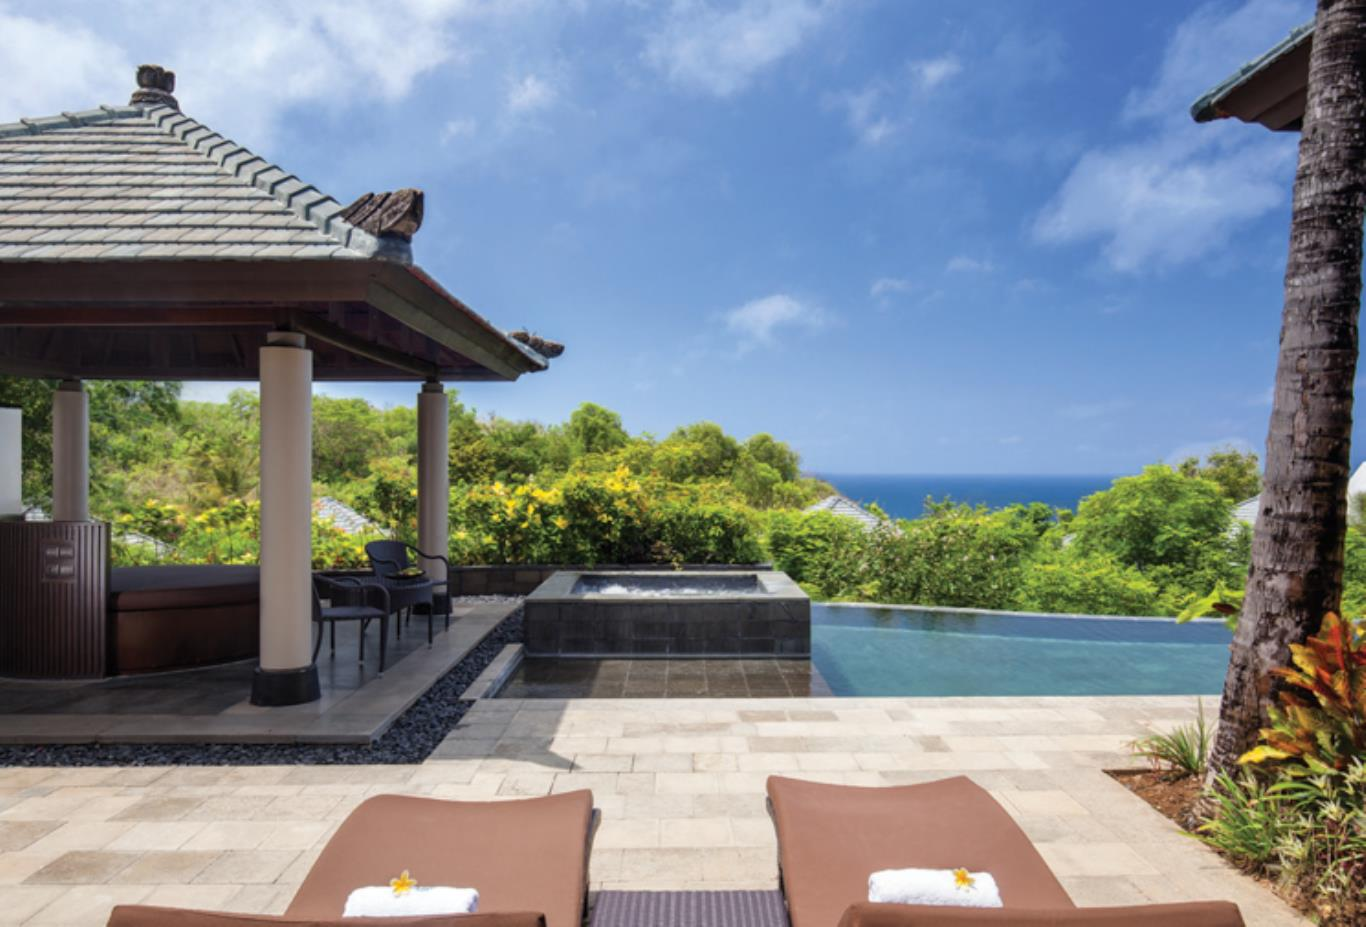 Pool Villa Cliff Edge views